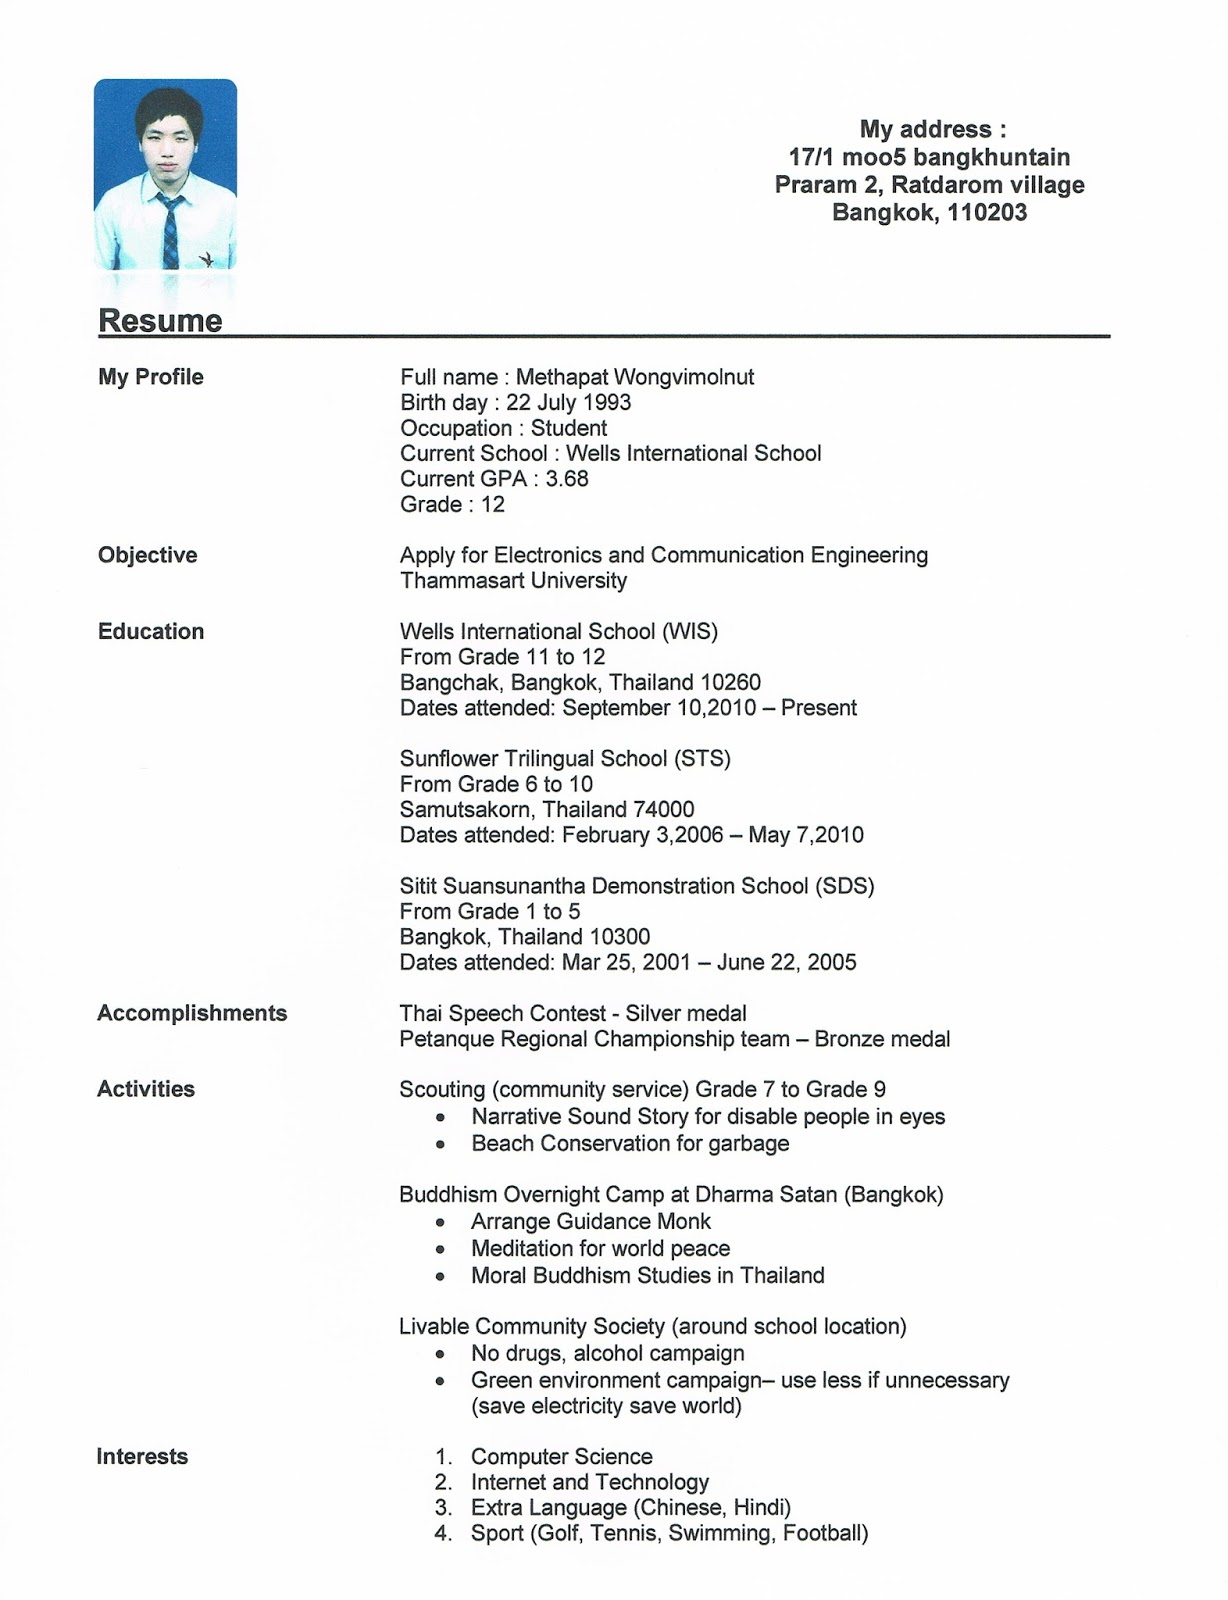 resume without work experience work experience resume format no experience job most used for medical receptionist resume with no experience http resume. Resume Example. Resume CV Cover Letter